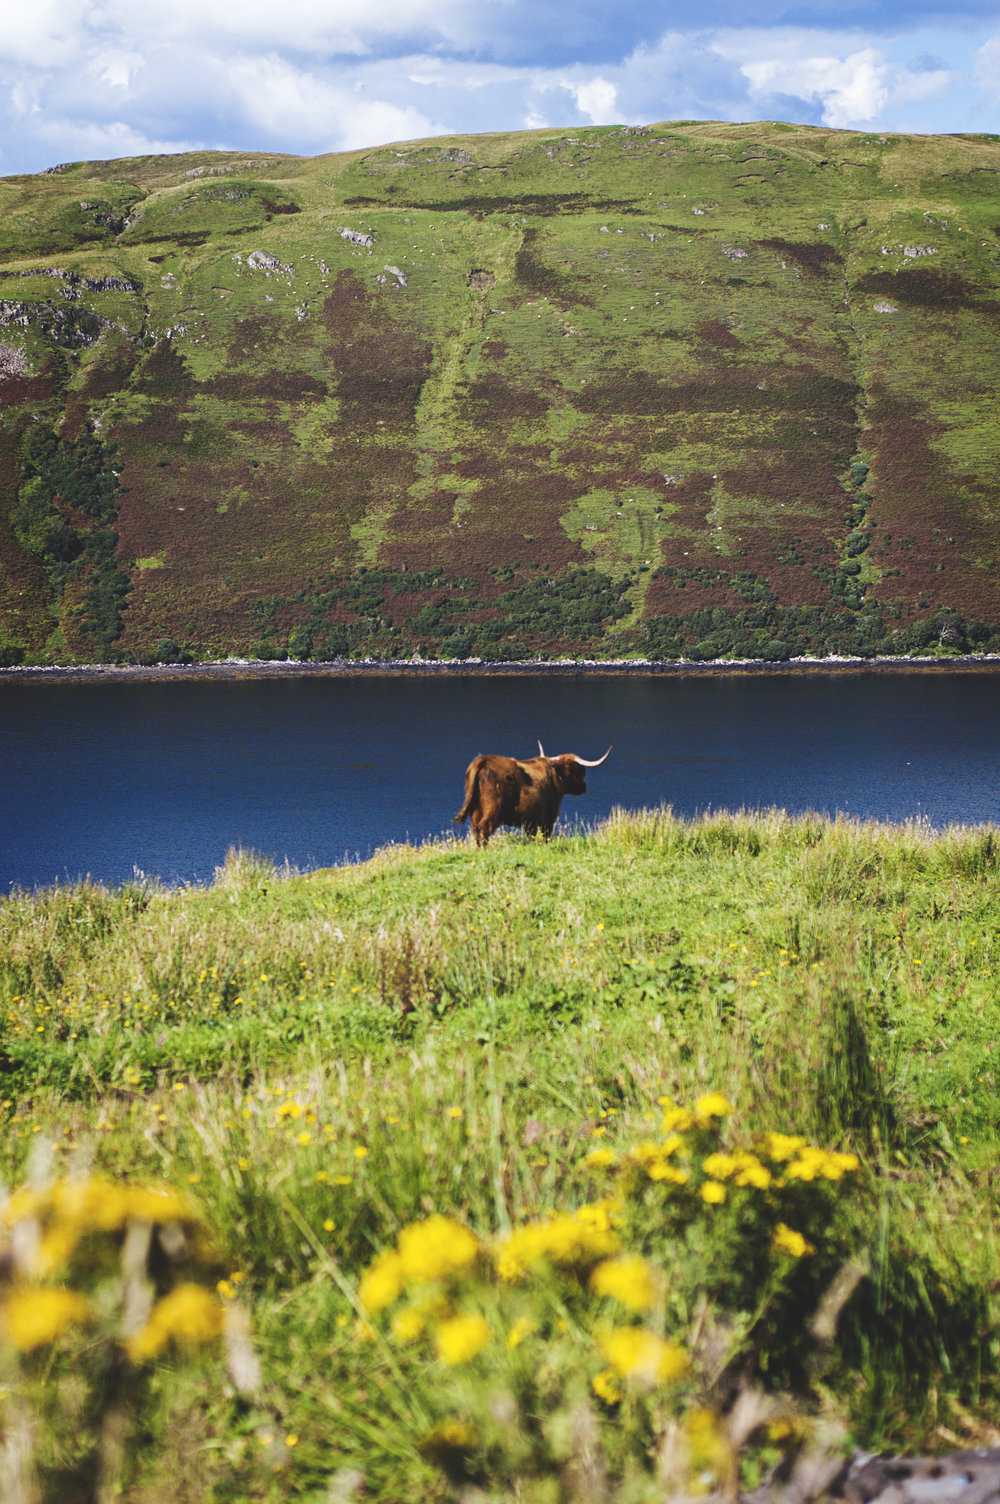 A Highland Cow surveying its Kingdom